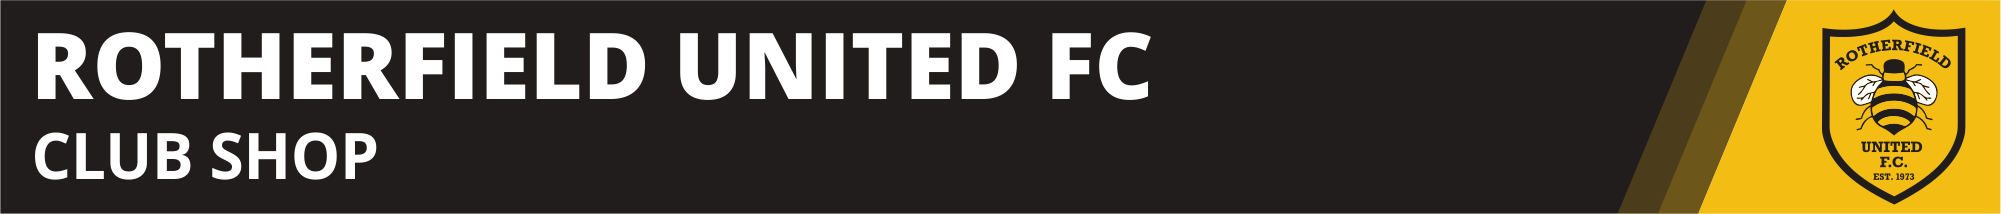 rotherfield-united-fc-club-shop-banner.png